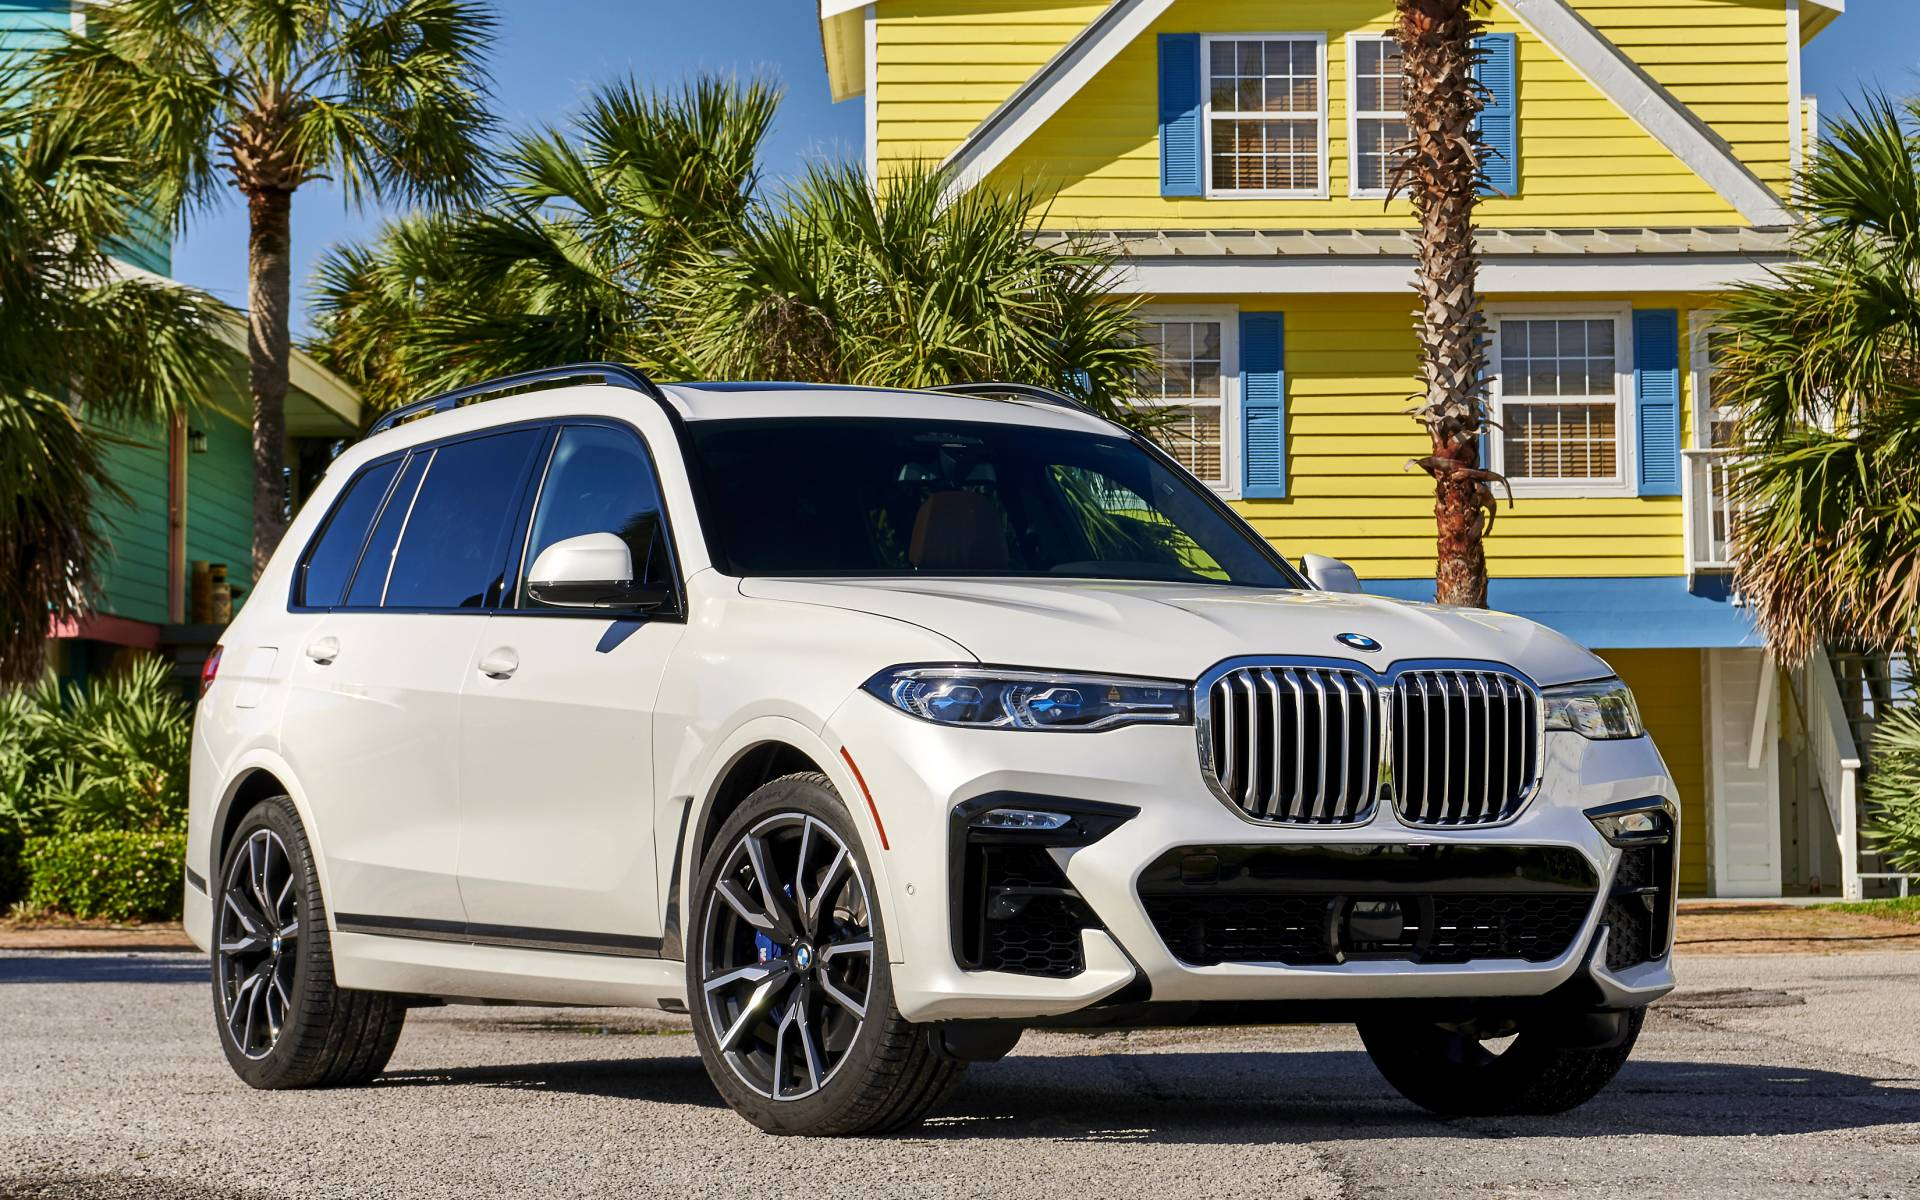 2020 Bmw X7 News Reviews Picture Galleries And Videos The Car Guide